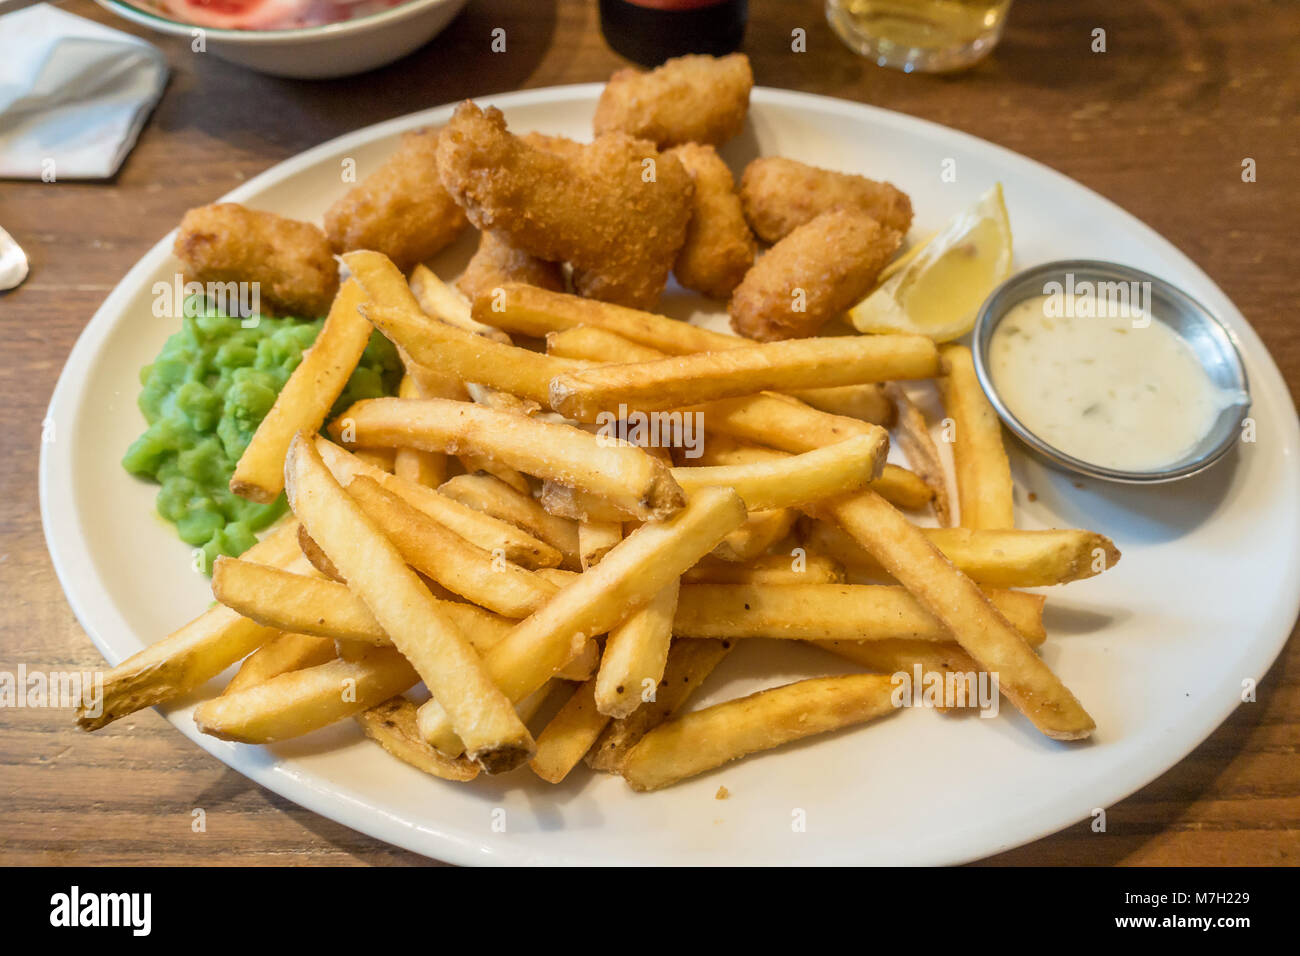 A plate of scampi, chips, mushy peas and tartar sauce. - Stock Image